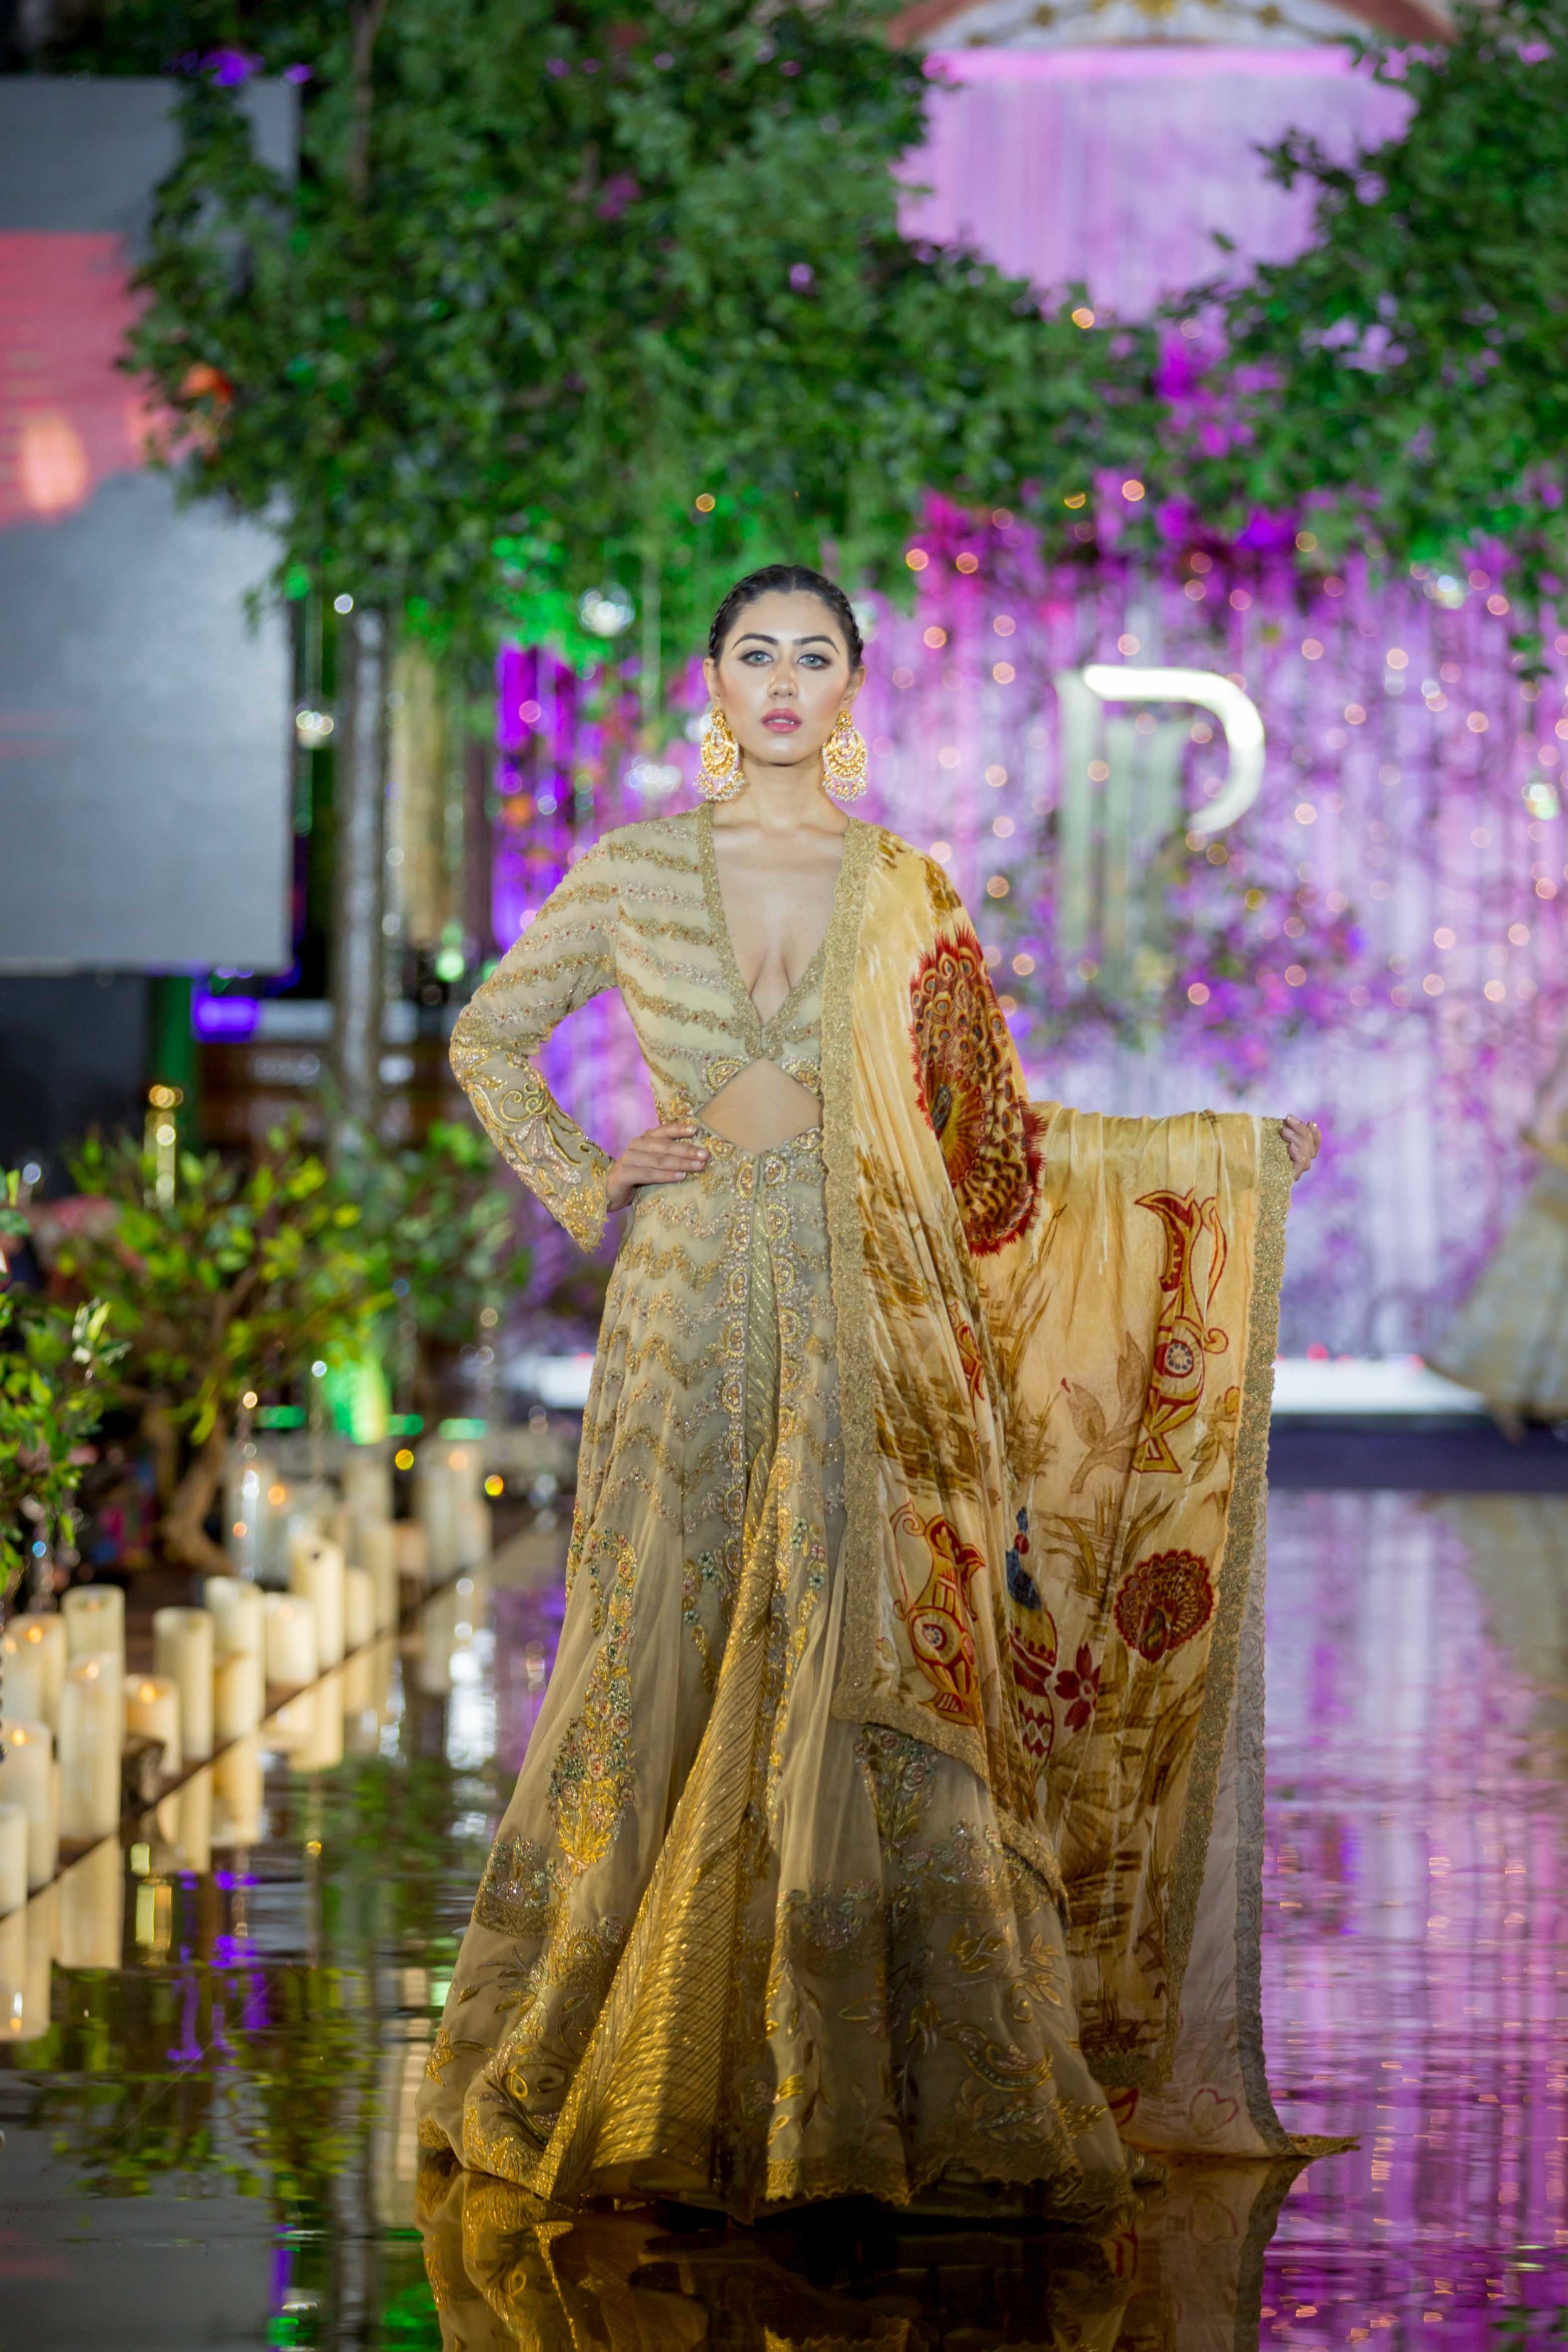 IPLF-IPL-Indian-Pakistani-London-Fashion-London-Week-catwalk-photographer-natalia-smith-photography-rimple-harpeet-narula-62.jpg